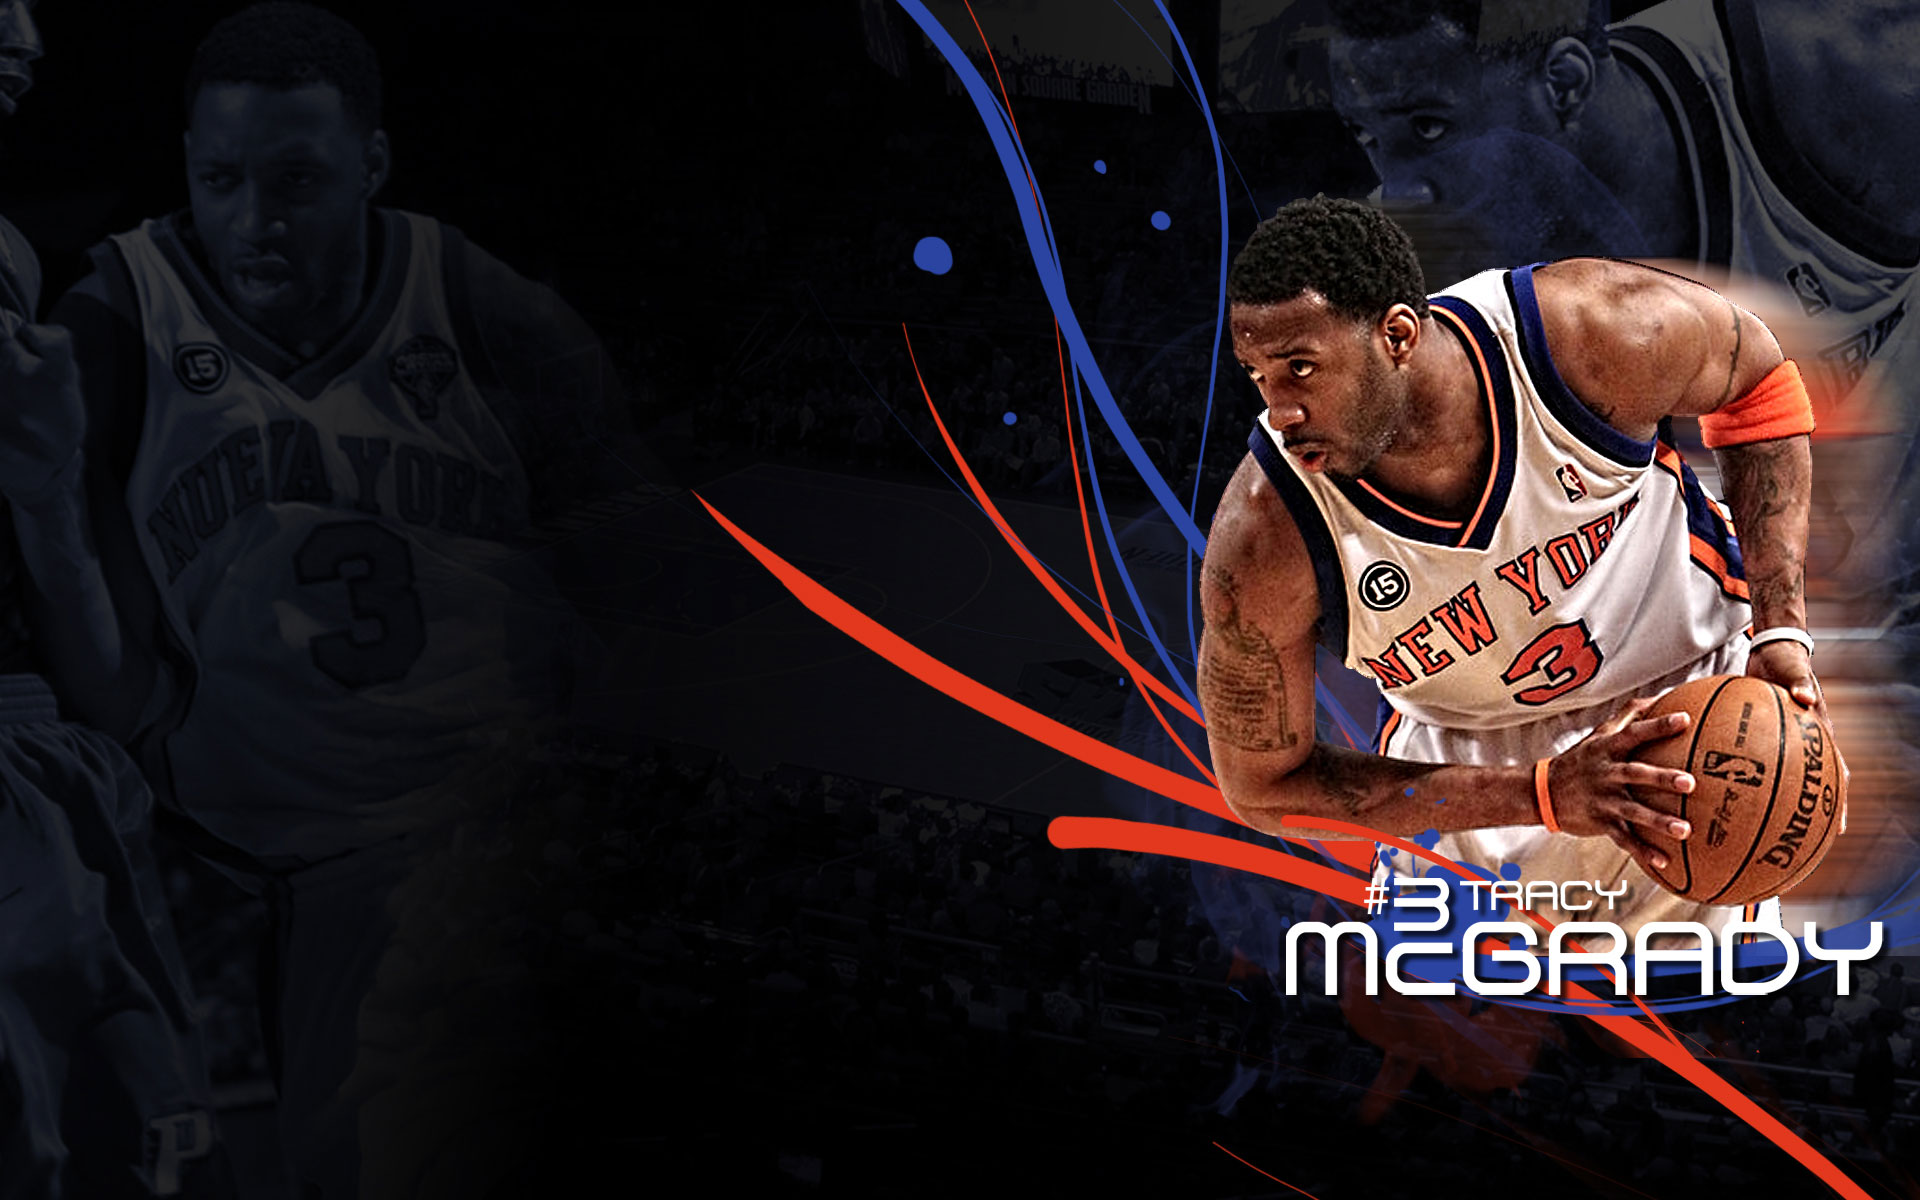 tracy mcgrady wallpaper desktop - photo #16